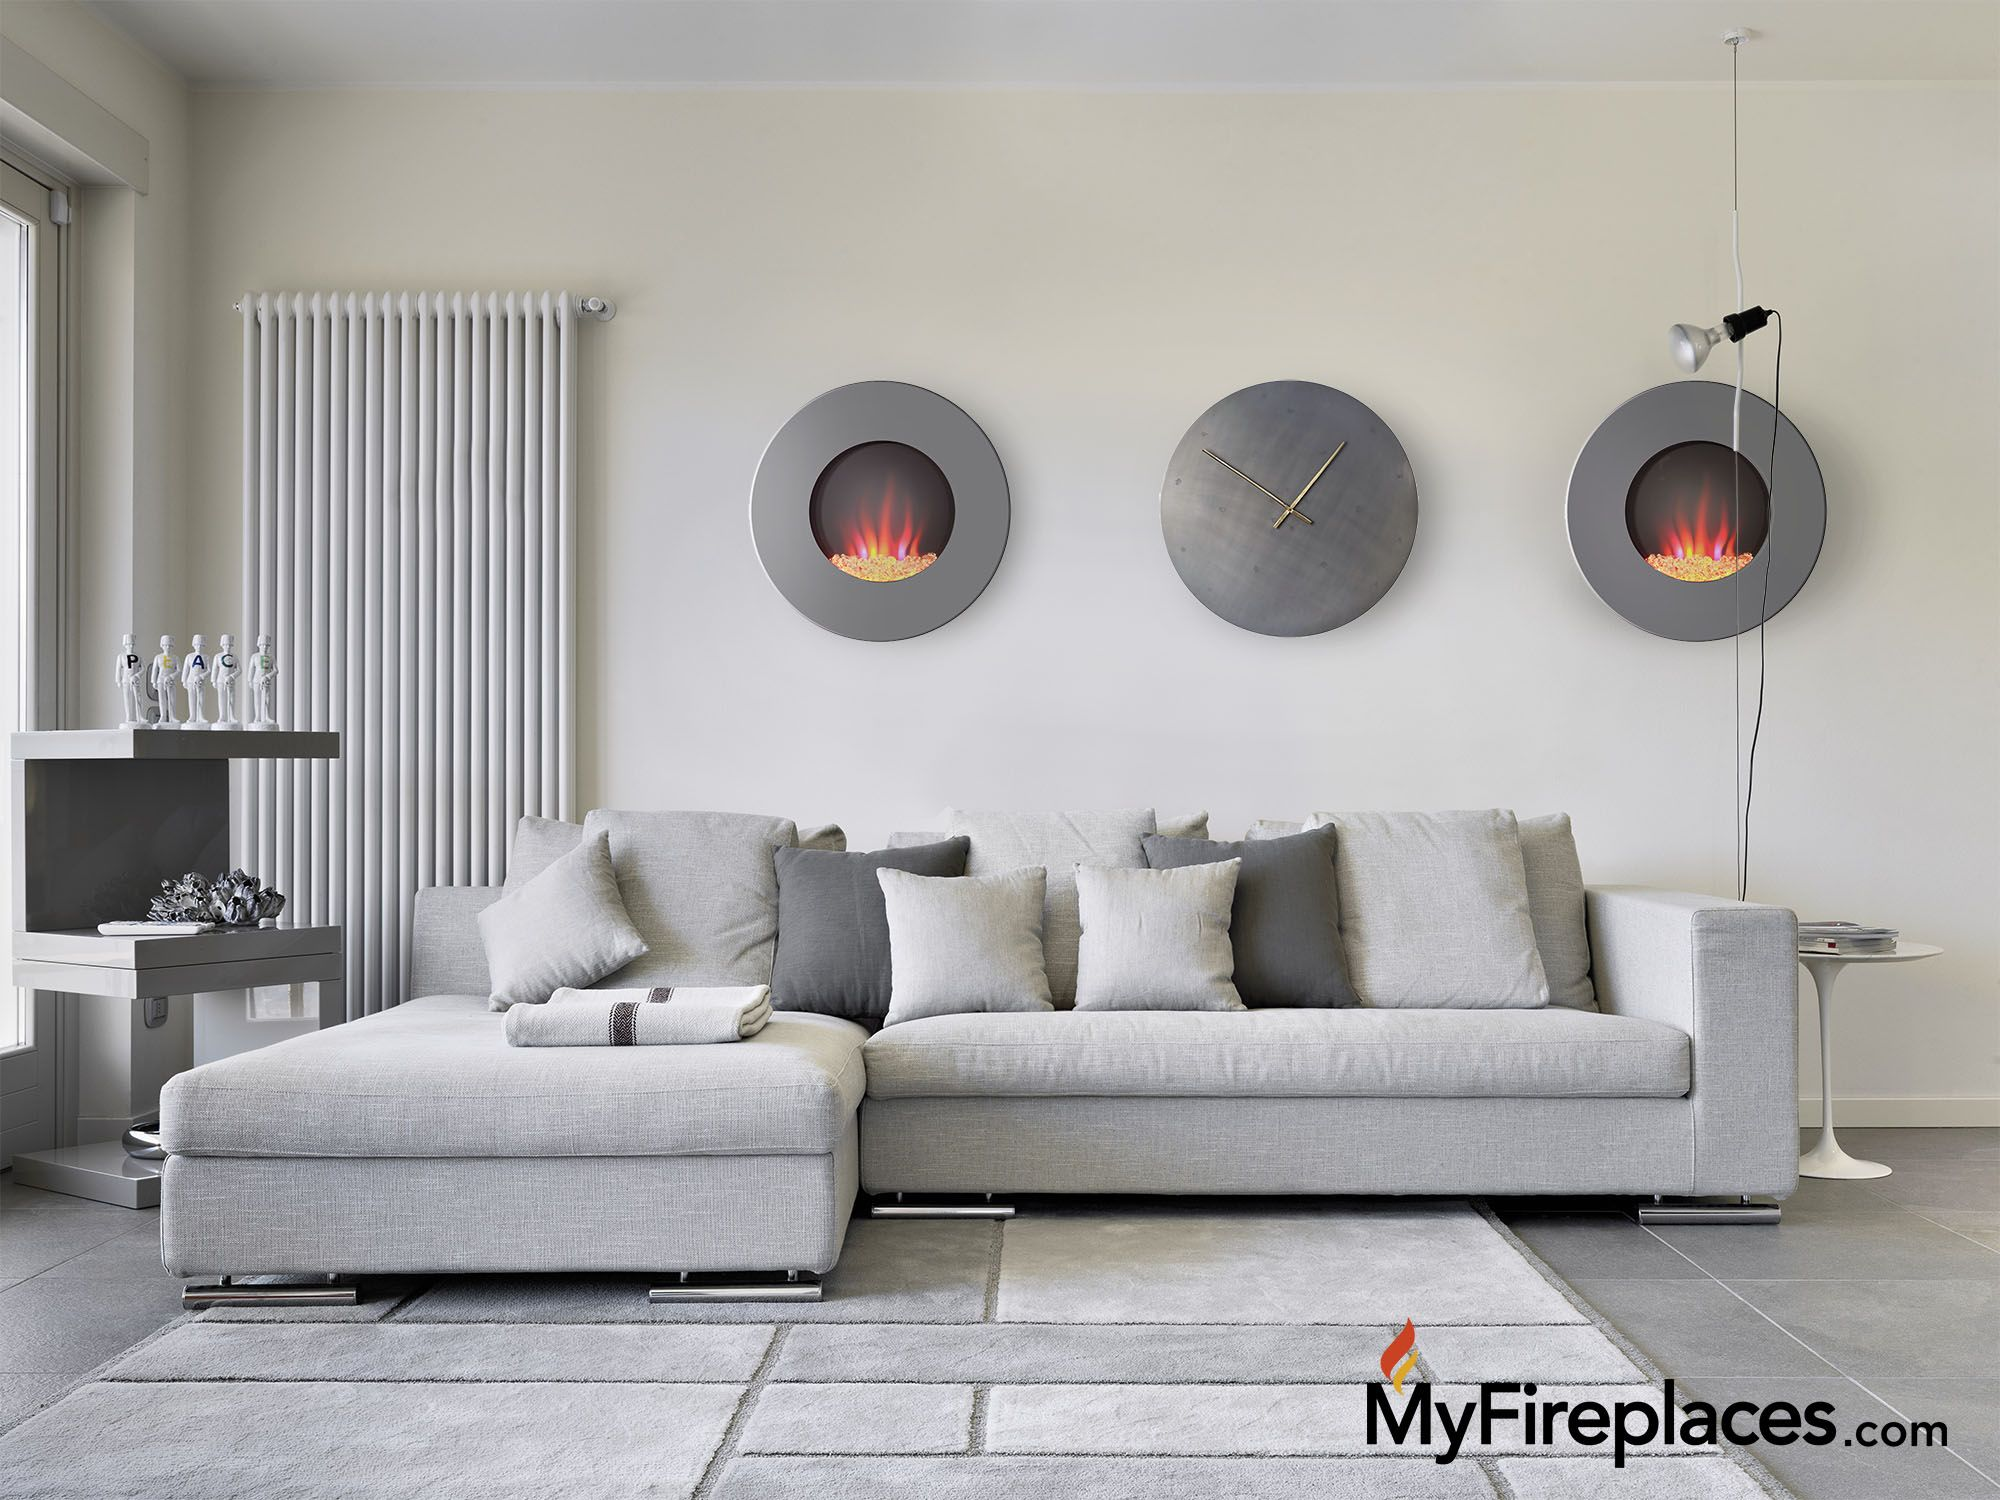 how to style the 23 round wall mount electric fireplace